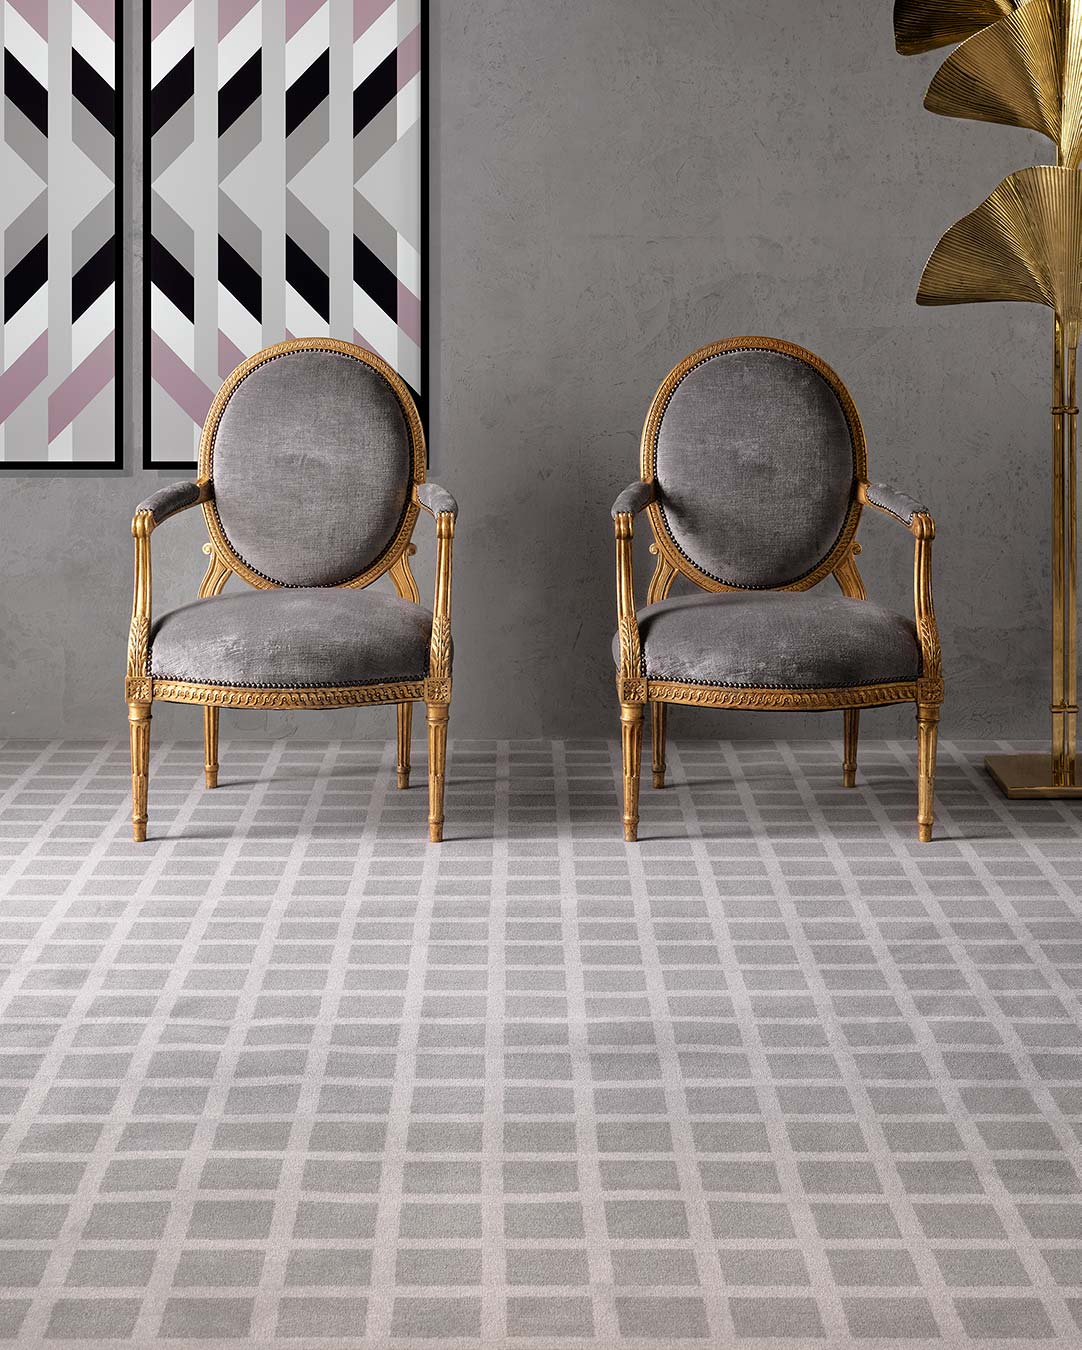 Living room view of Match grey geometric Axminster carpet by Greg Natale